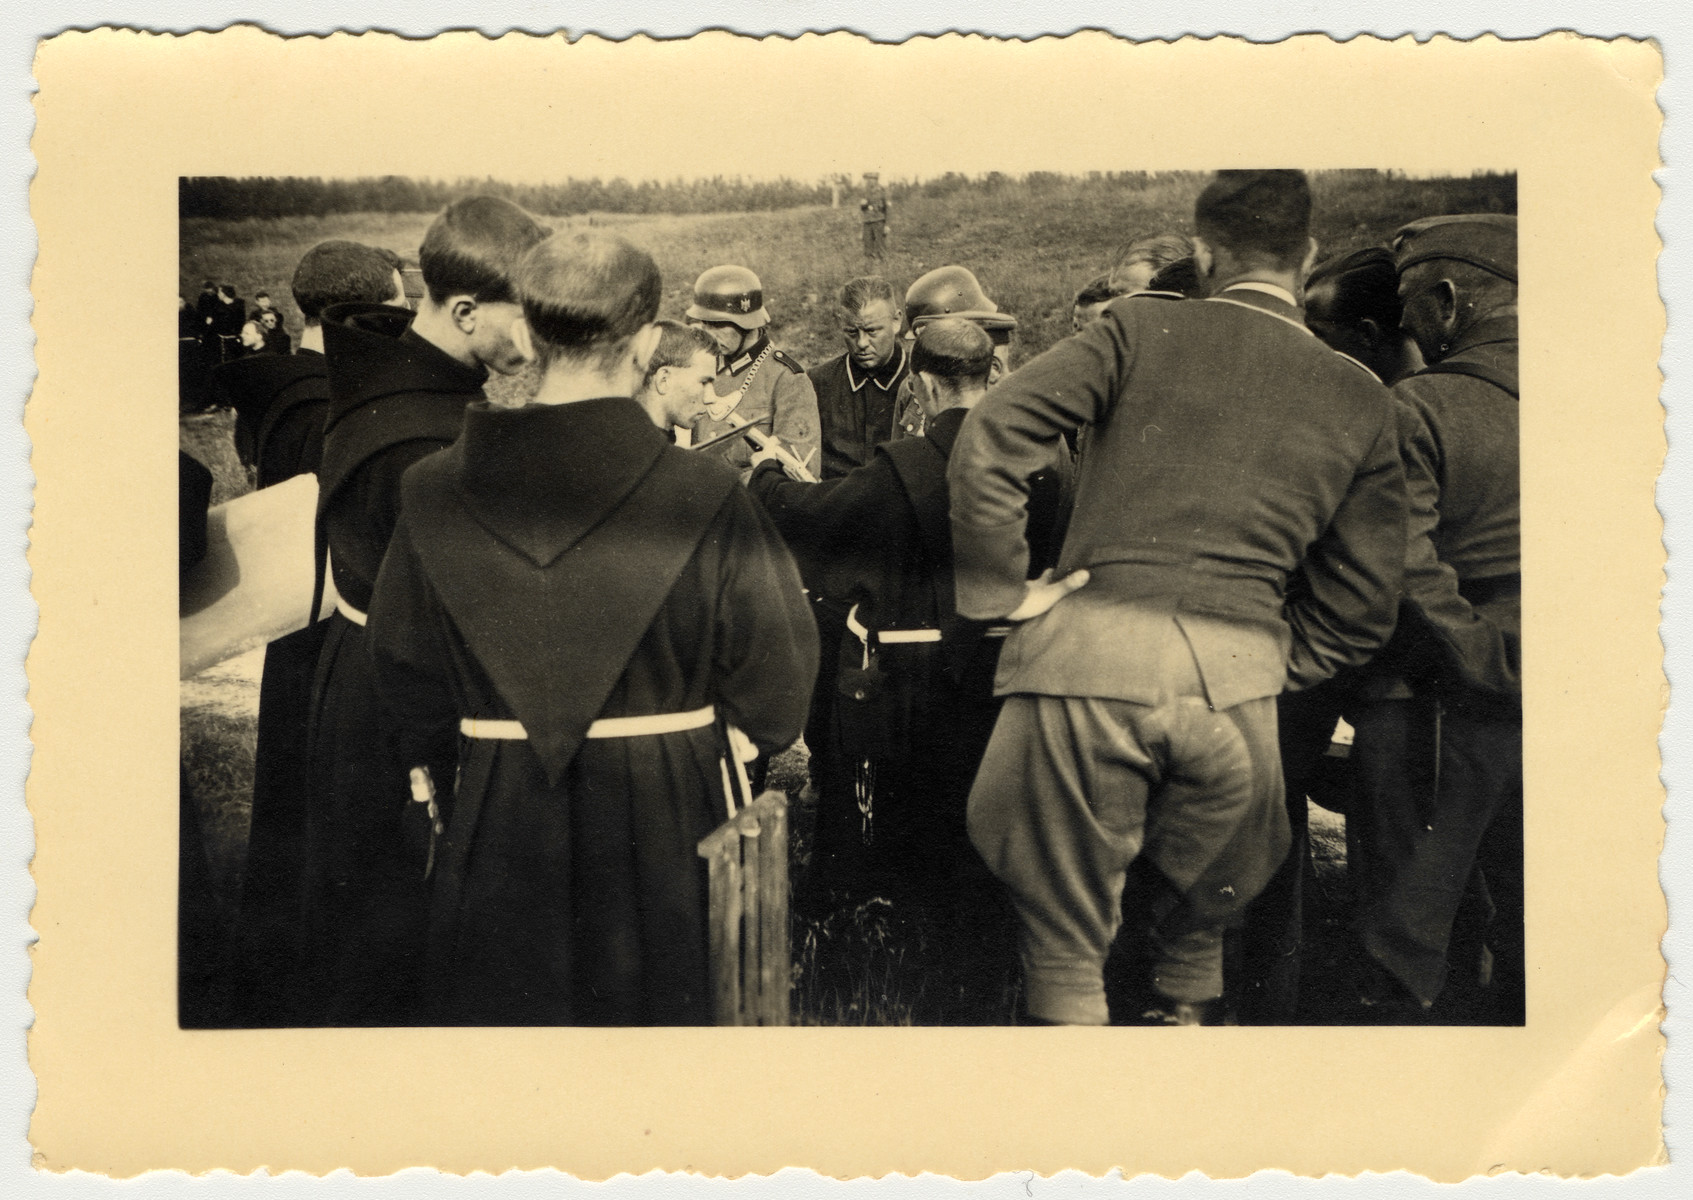 A group of monks gathers around some German soldiers.